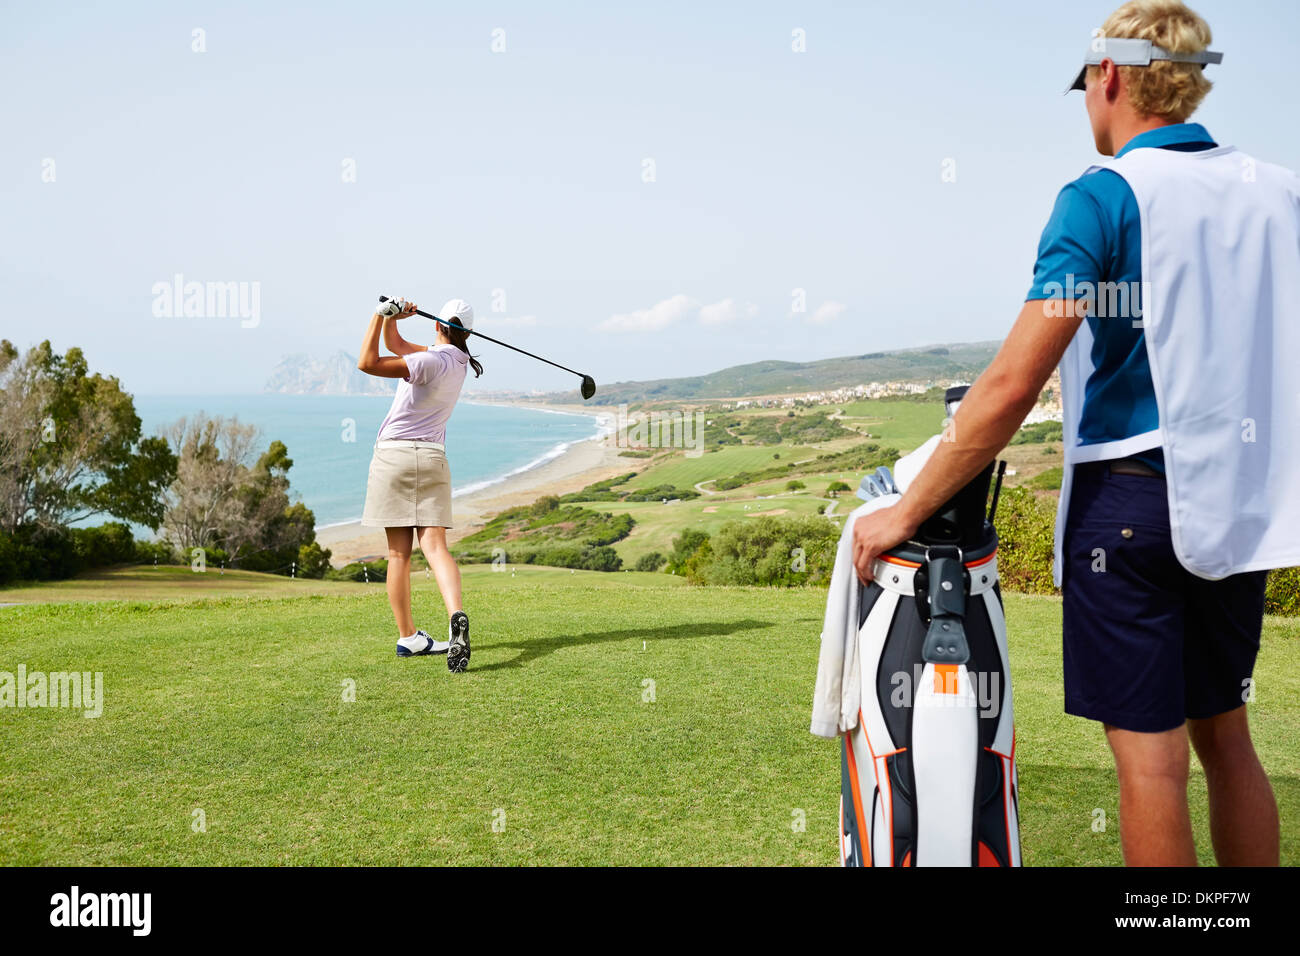 Caddy watching woman tee off on golf course overlooking ocean - Stock Image